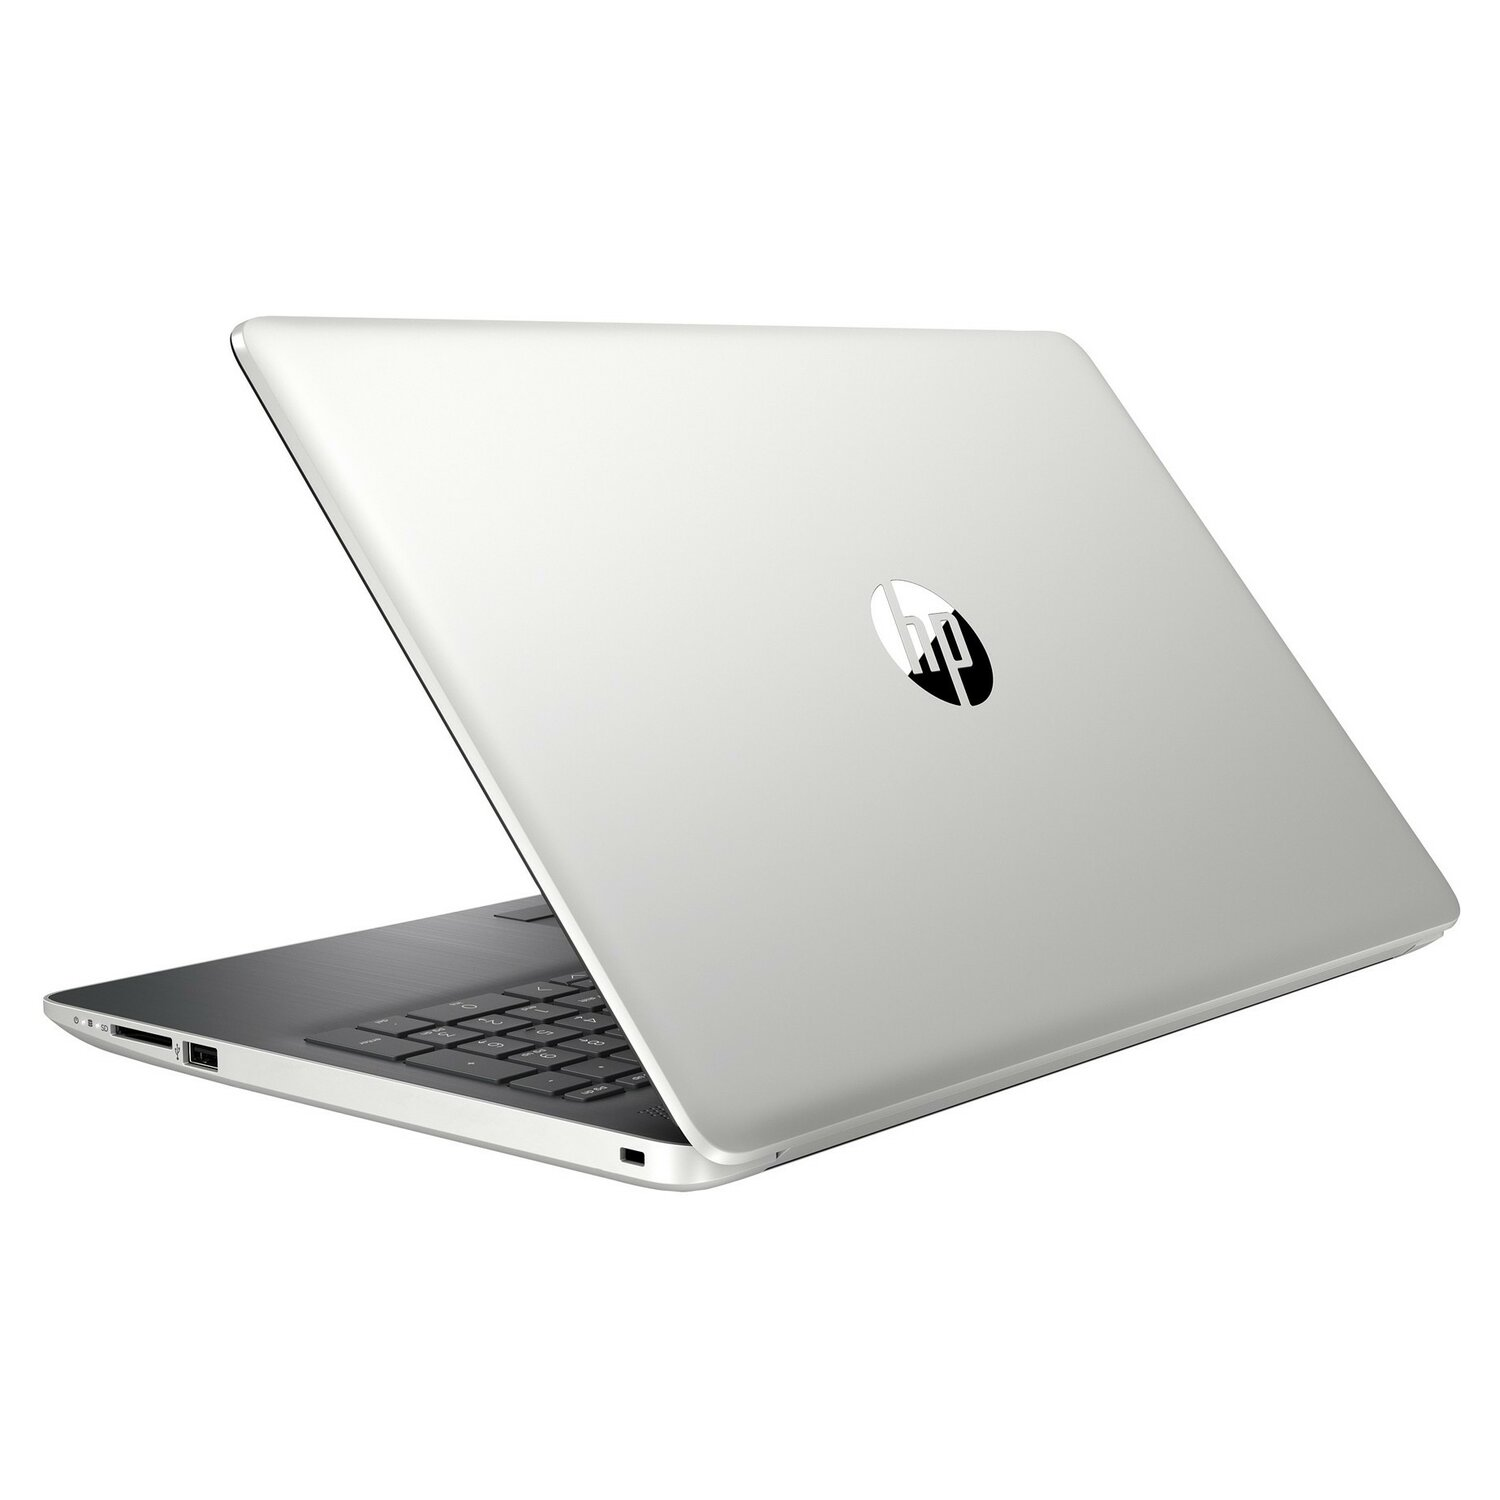 Laptop HP 15-db0037nw FHD A9-9425/8GB/256GB SSD/INT/Win10H Srebrny